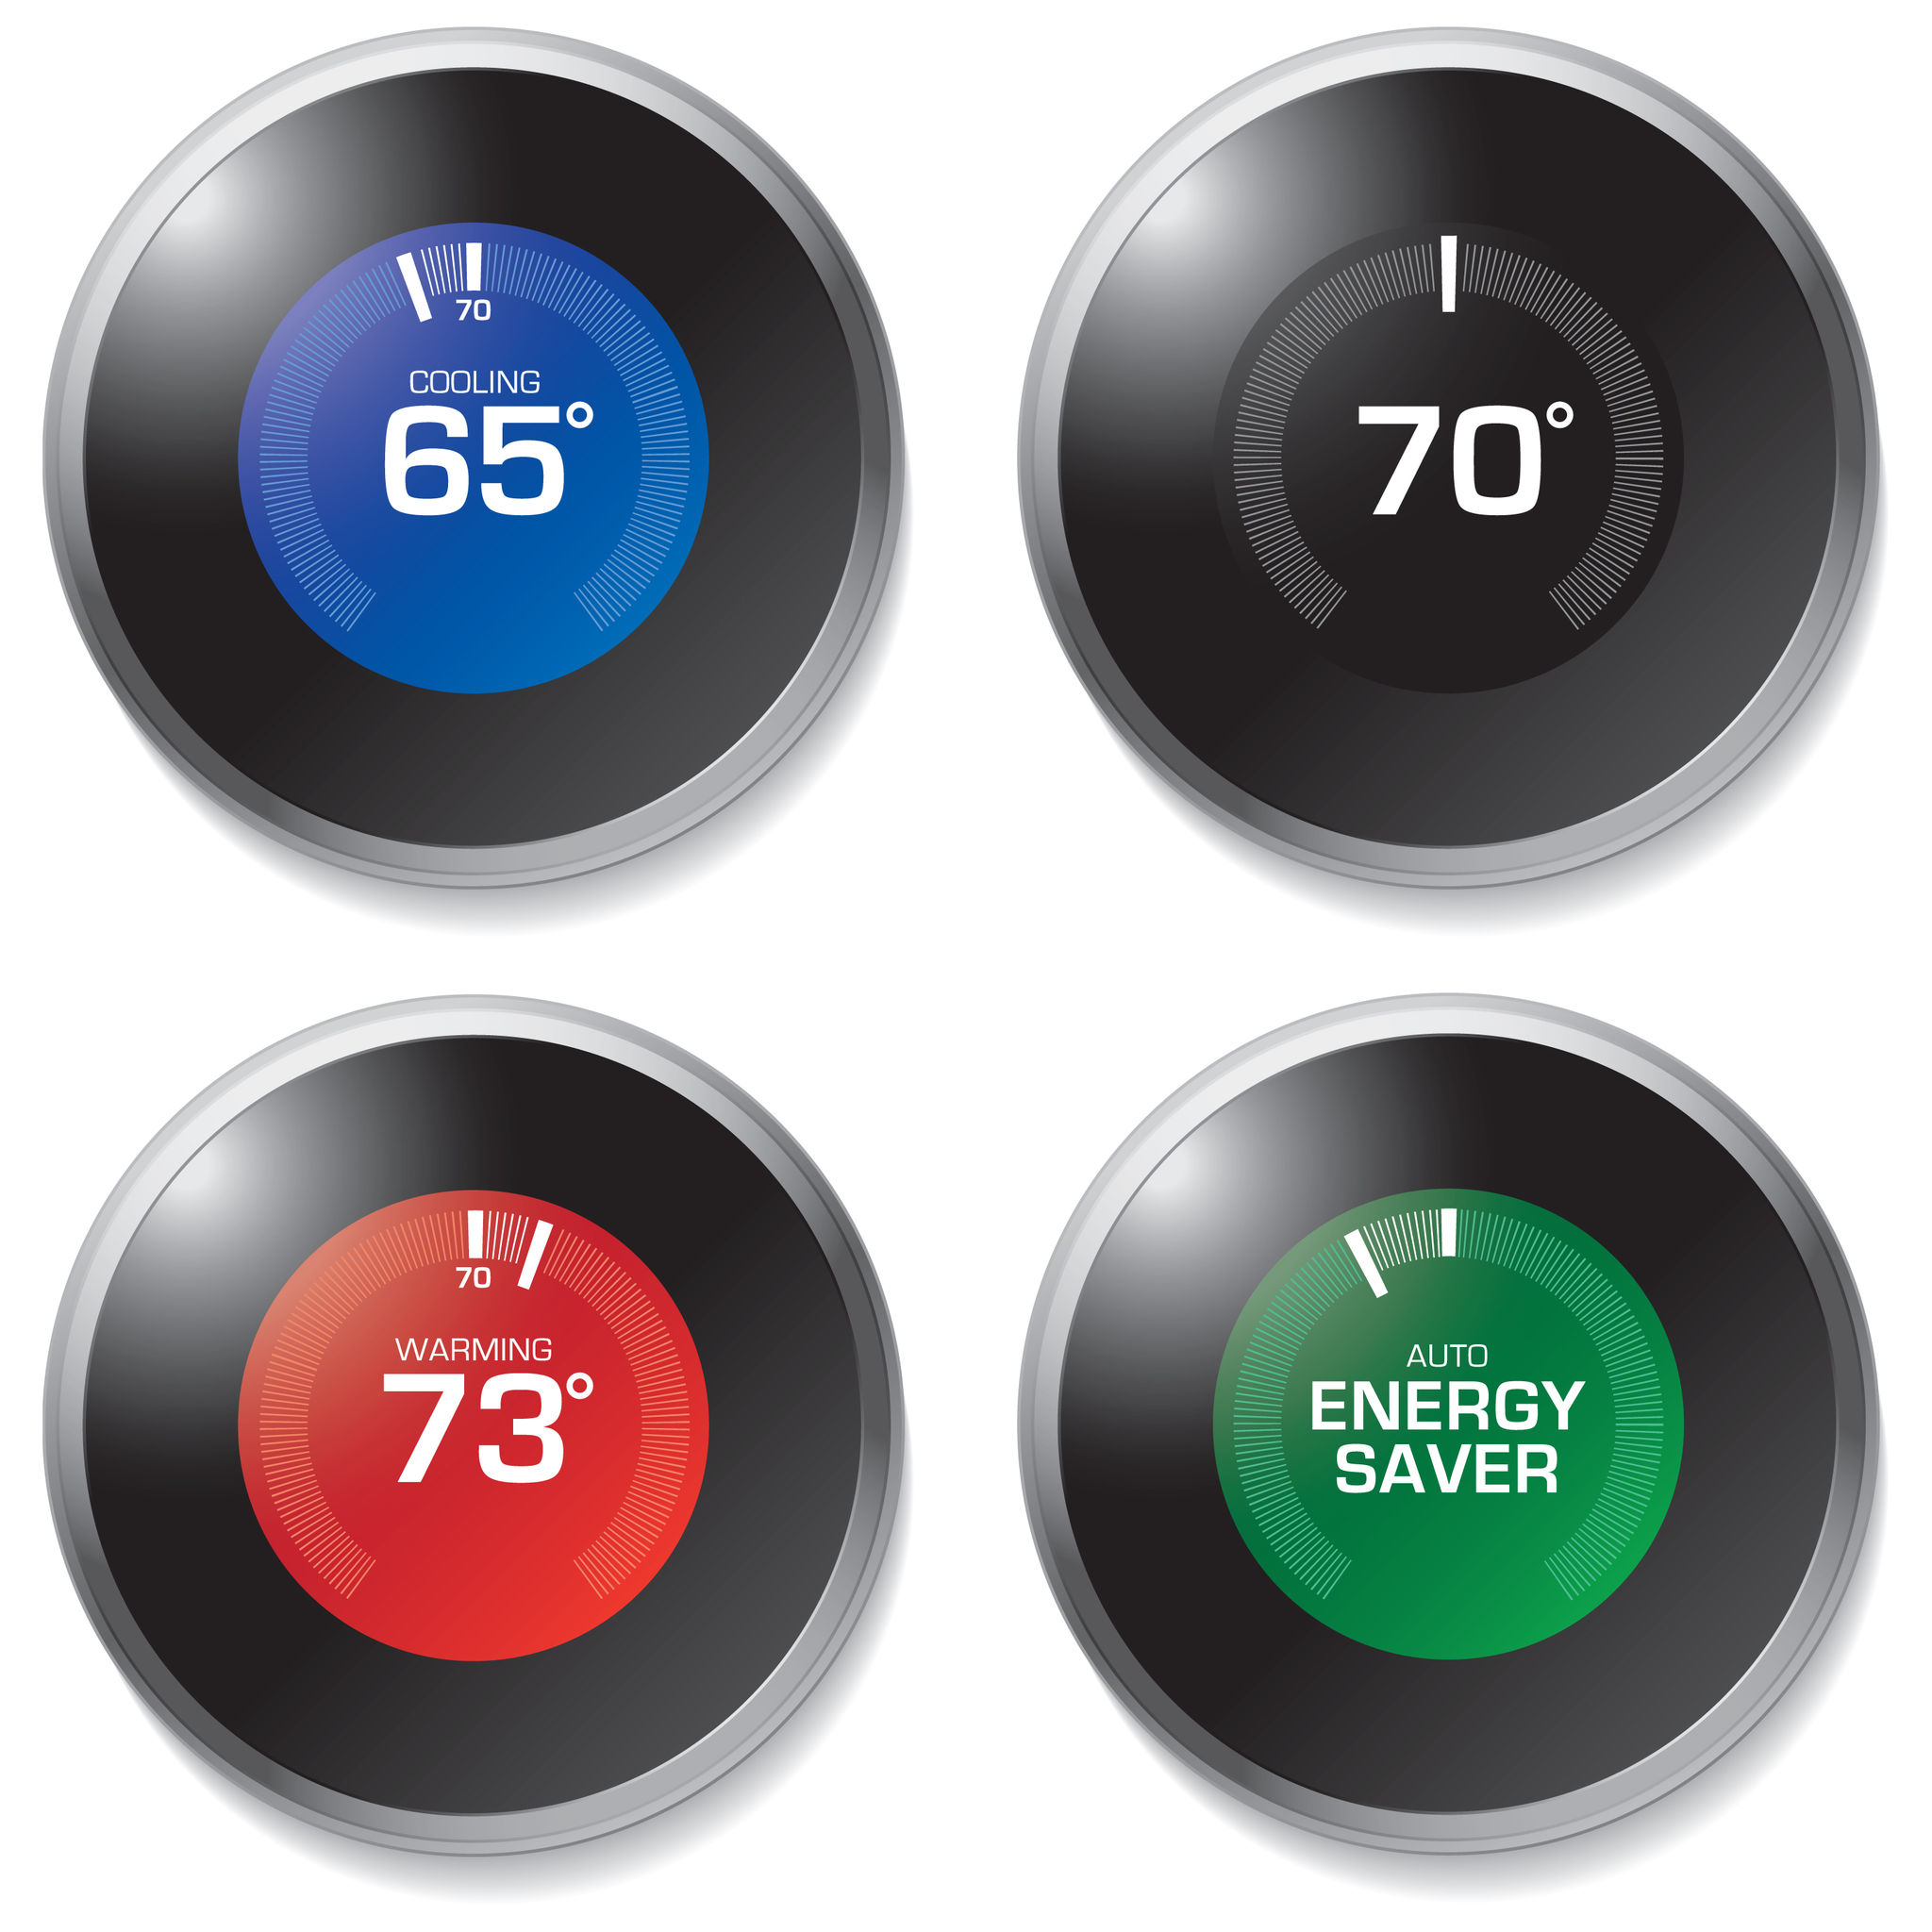 models of Nest Learning Thermostat